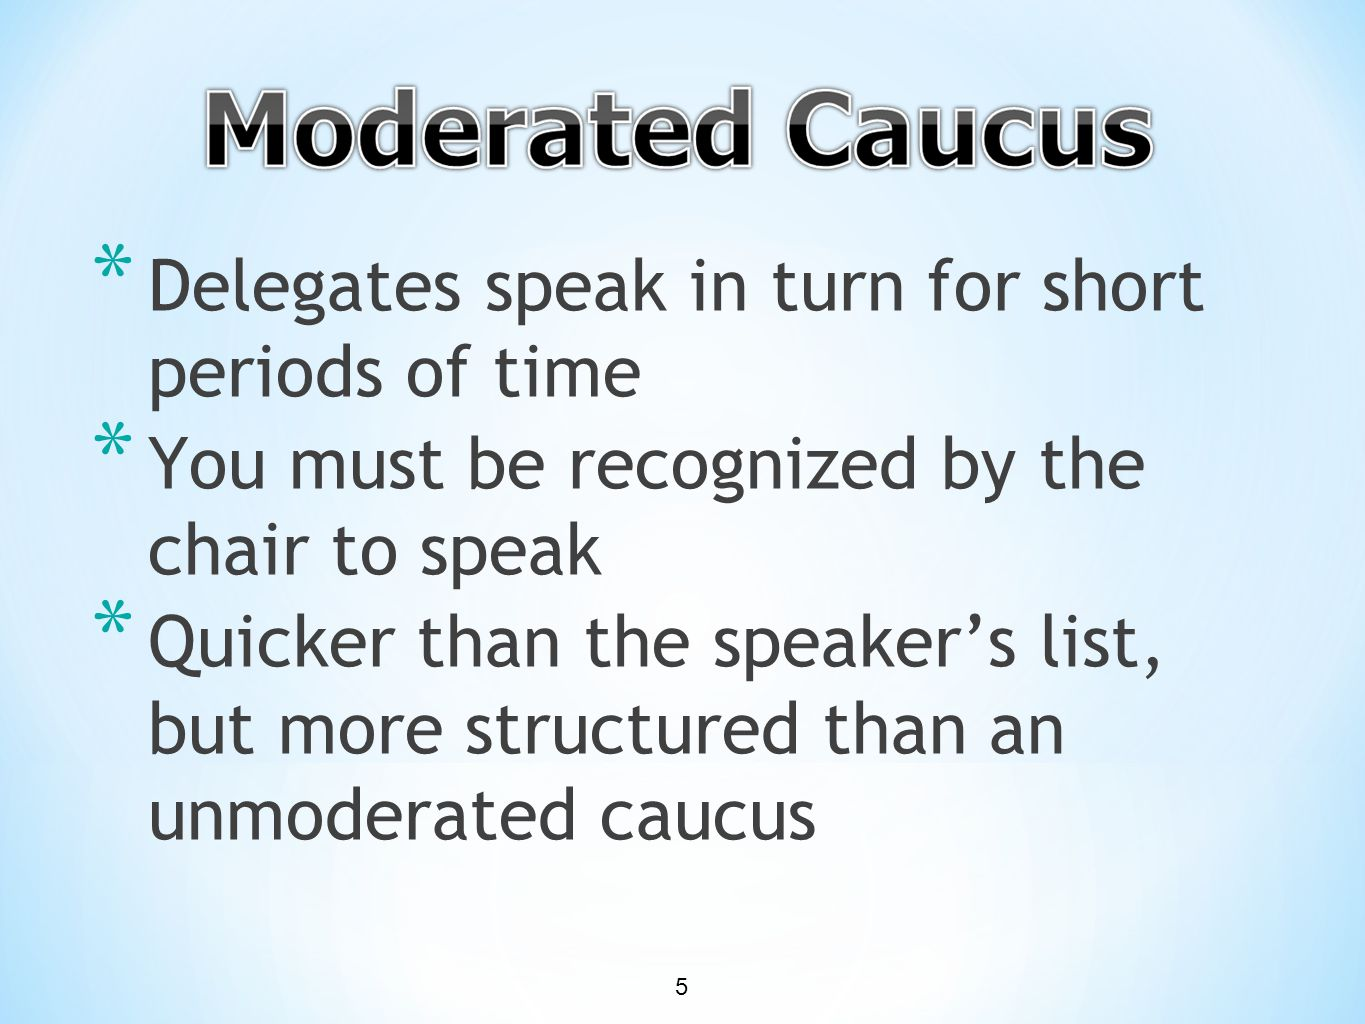 * Delegates speak in turn for short periods of time * You must be recognized by the chair to speak * Quicker than the speaker's list, but more structured than an unmoderated caucus 5